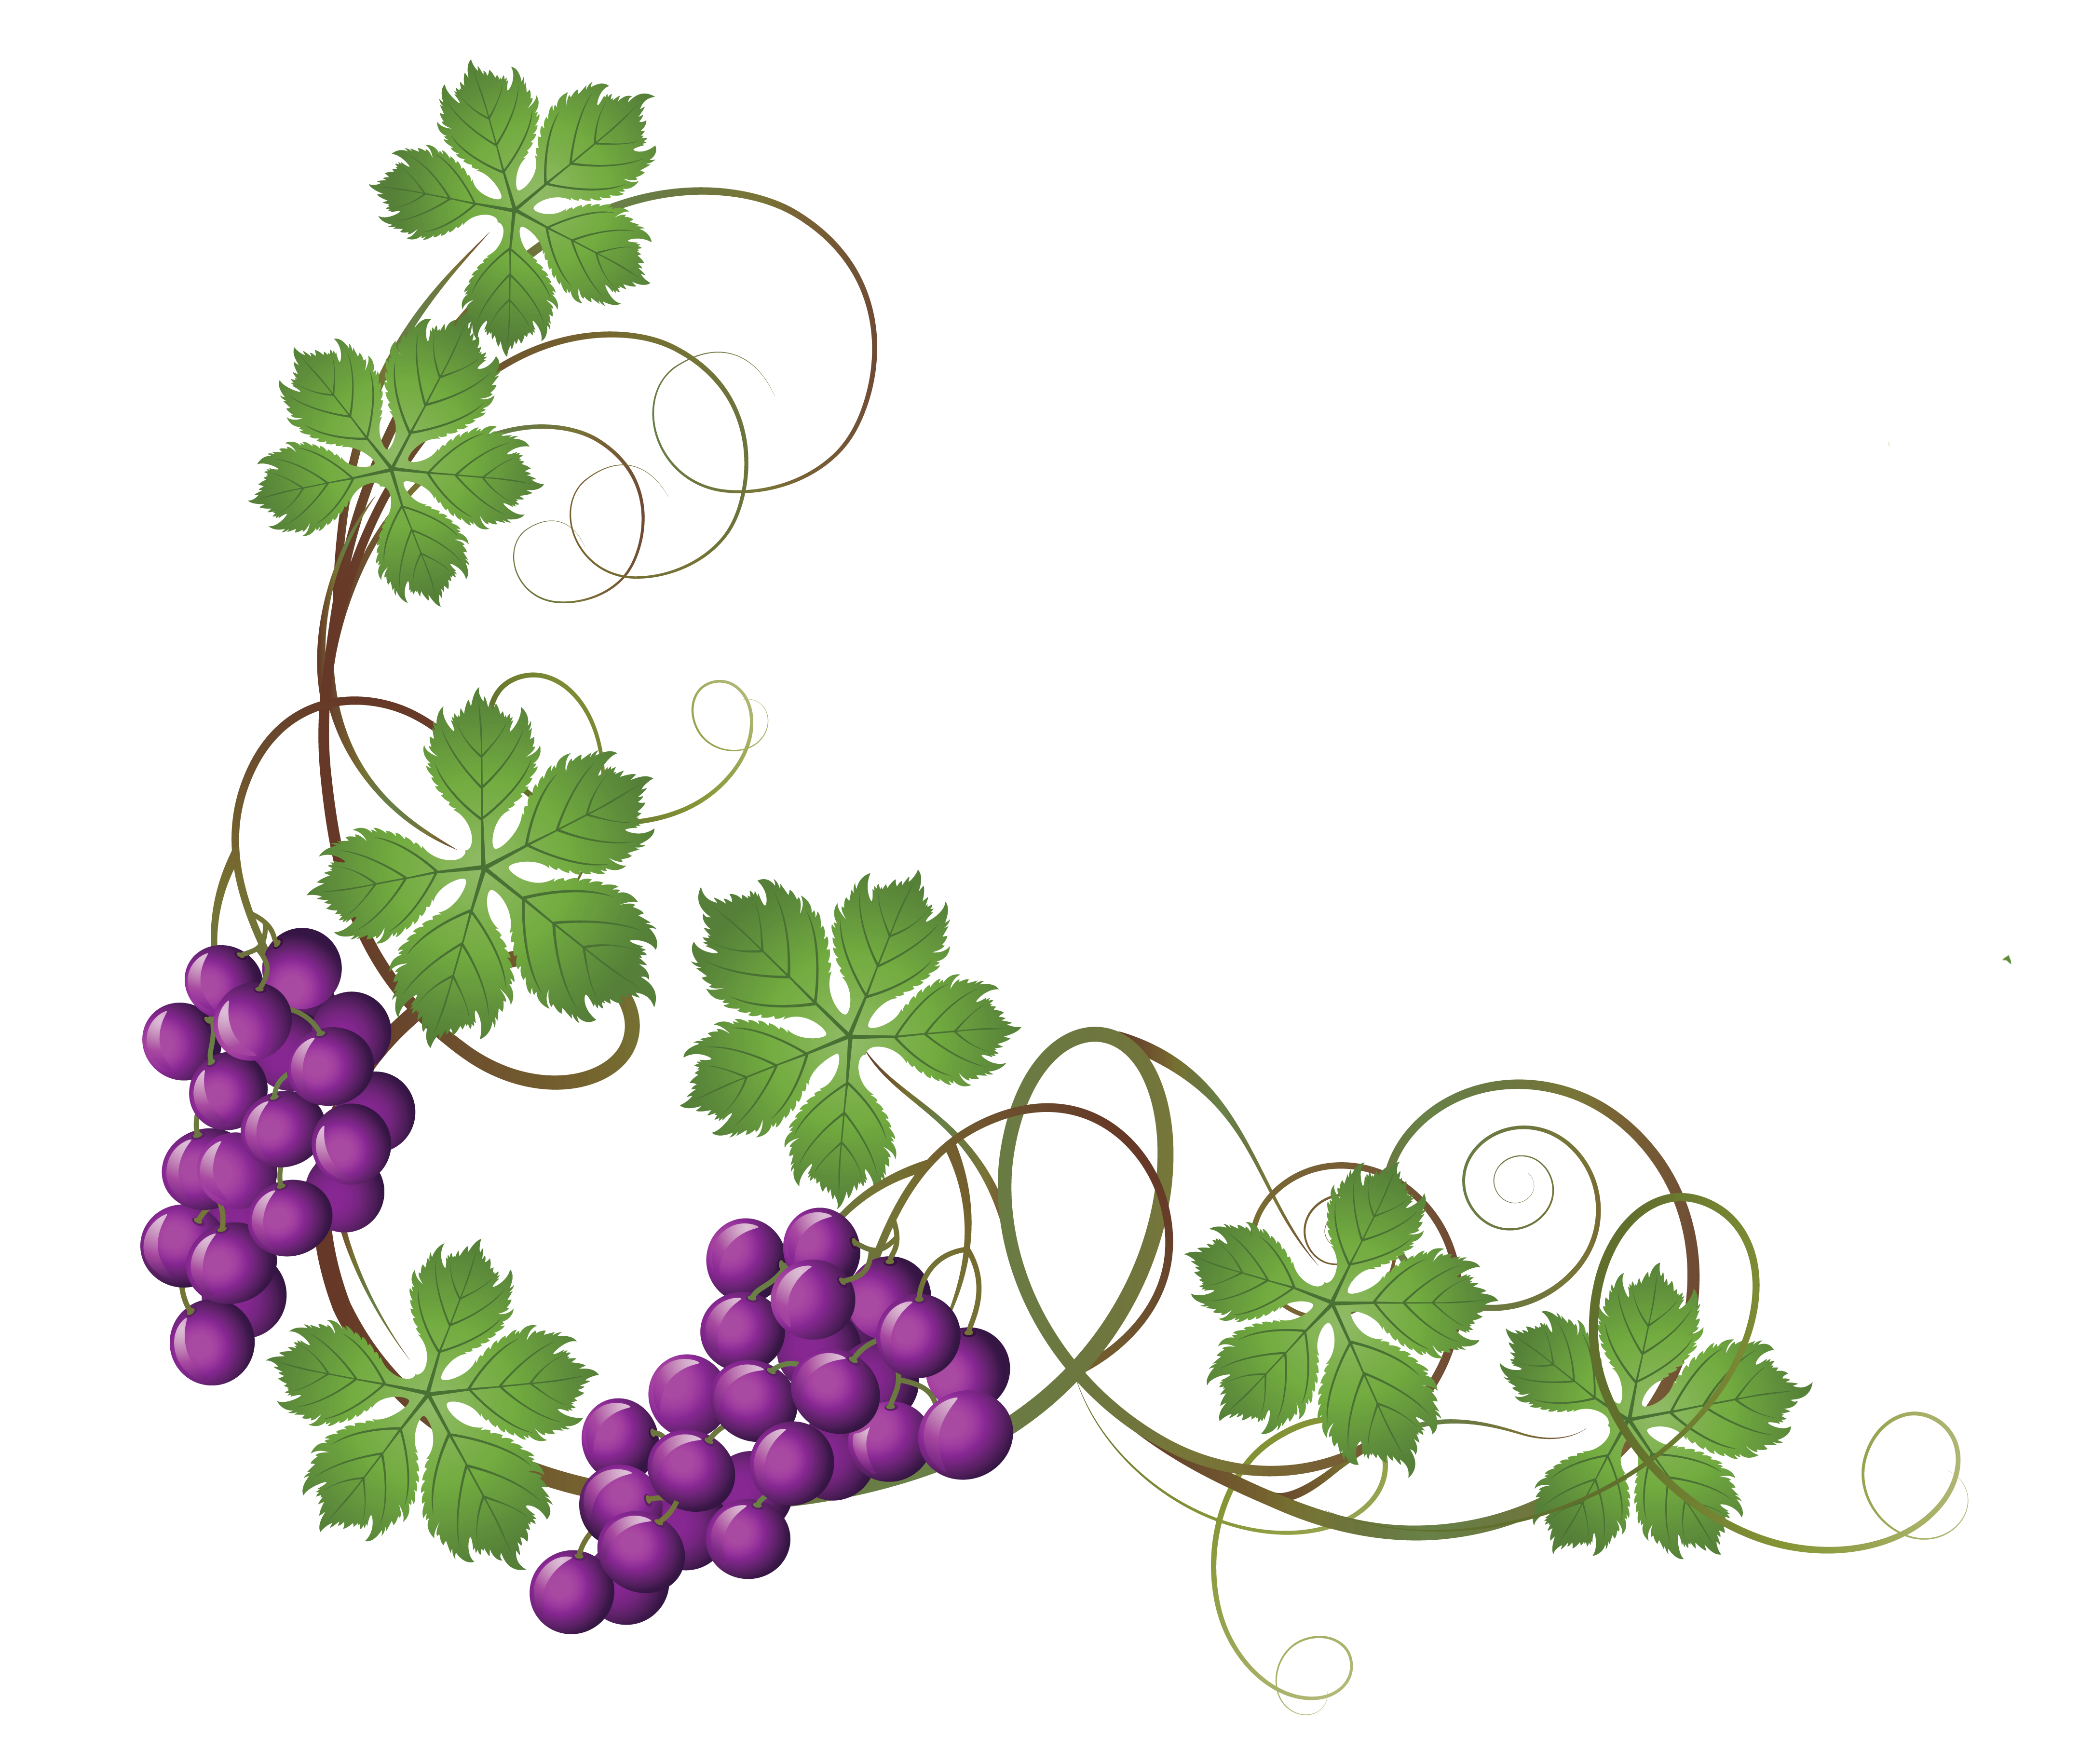 4340x3658 Transparent Vine Decoration PNG Clipart Pictureu200b Gallery - Vine And Branches PNG